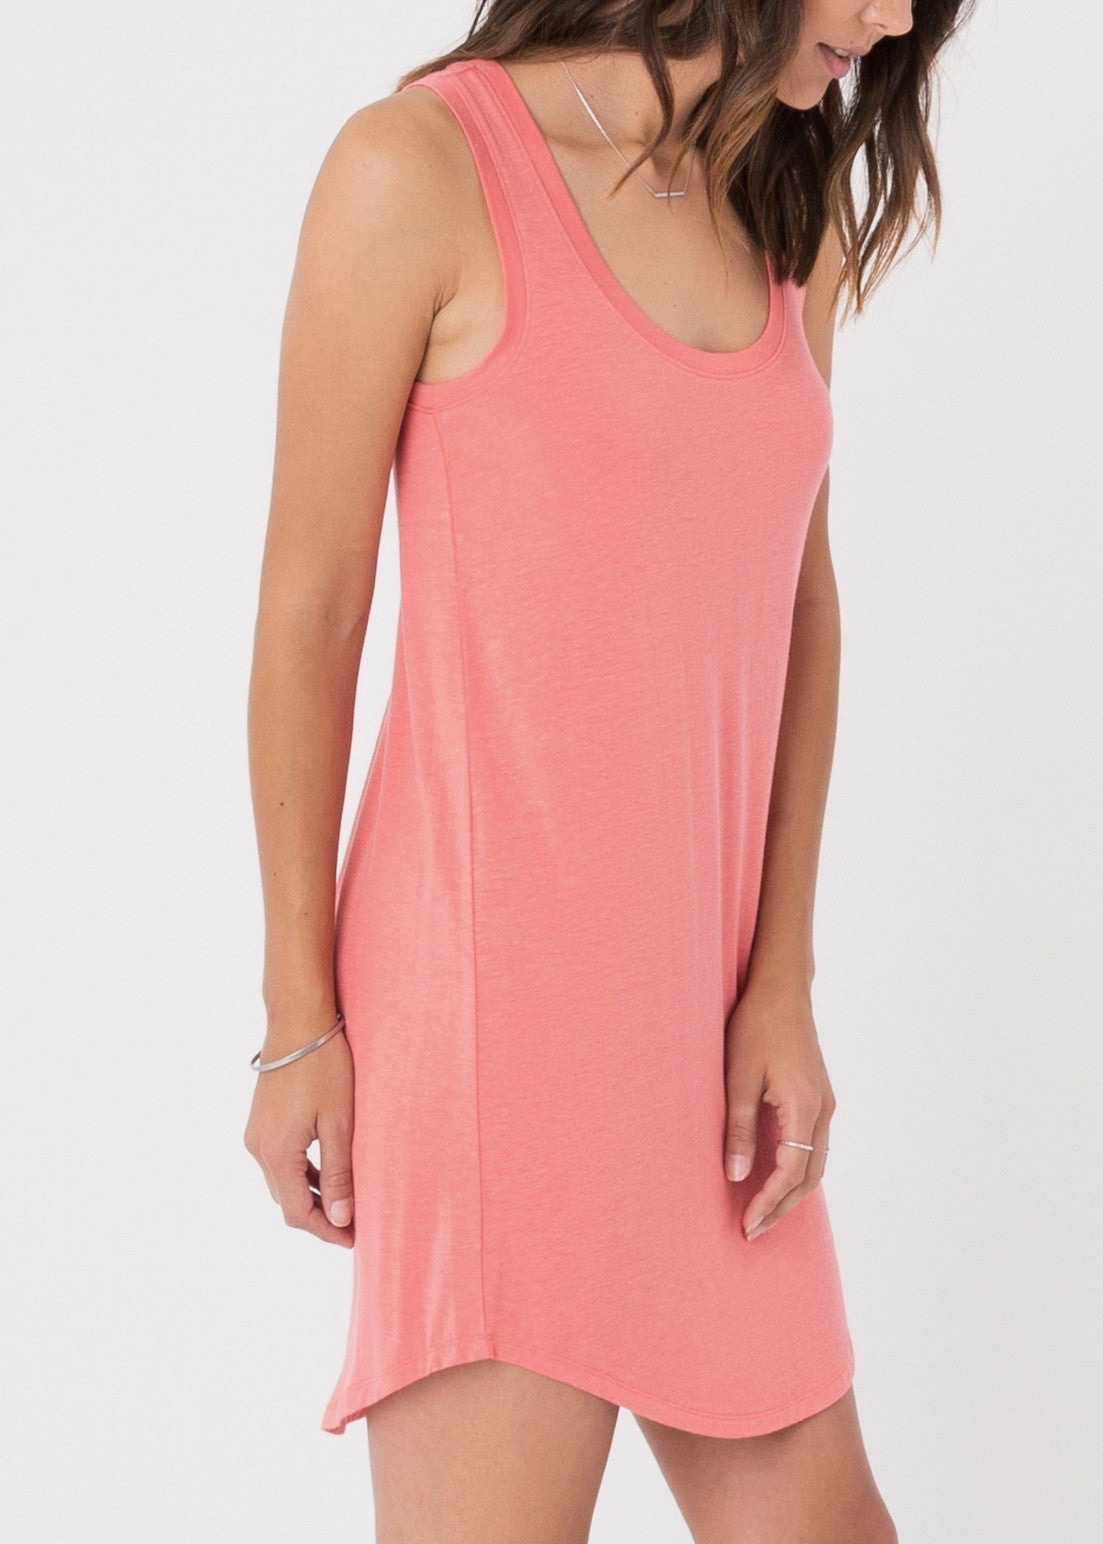 The Coastline Dress - Spiced Coral